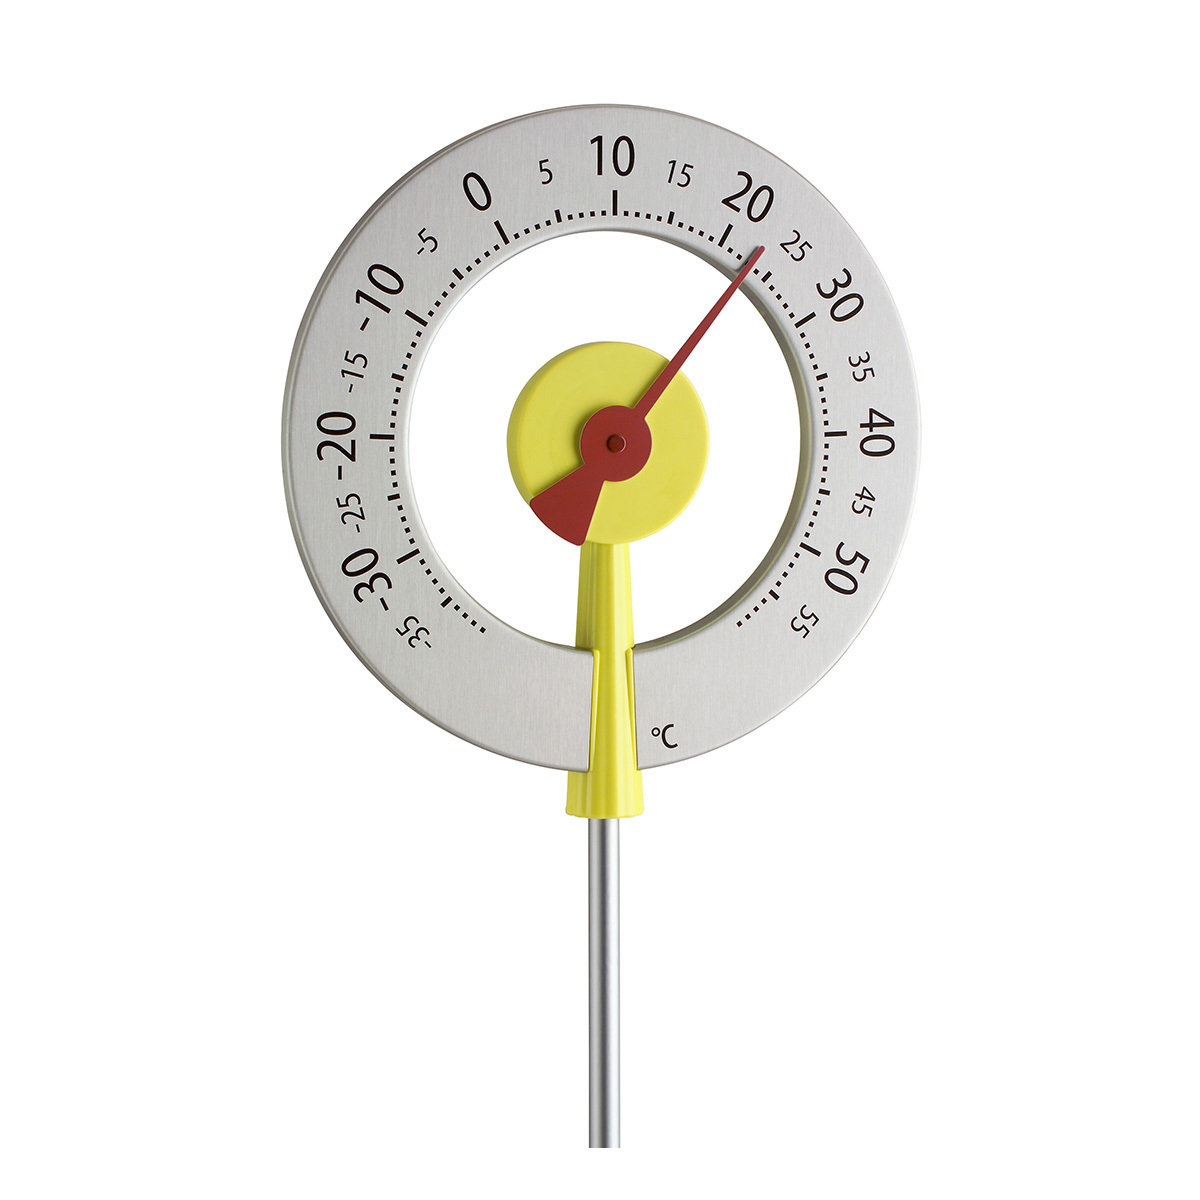 12-2055-07-analoges-design-gartenthermometer-lollipop-1200x1200px.jpg